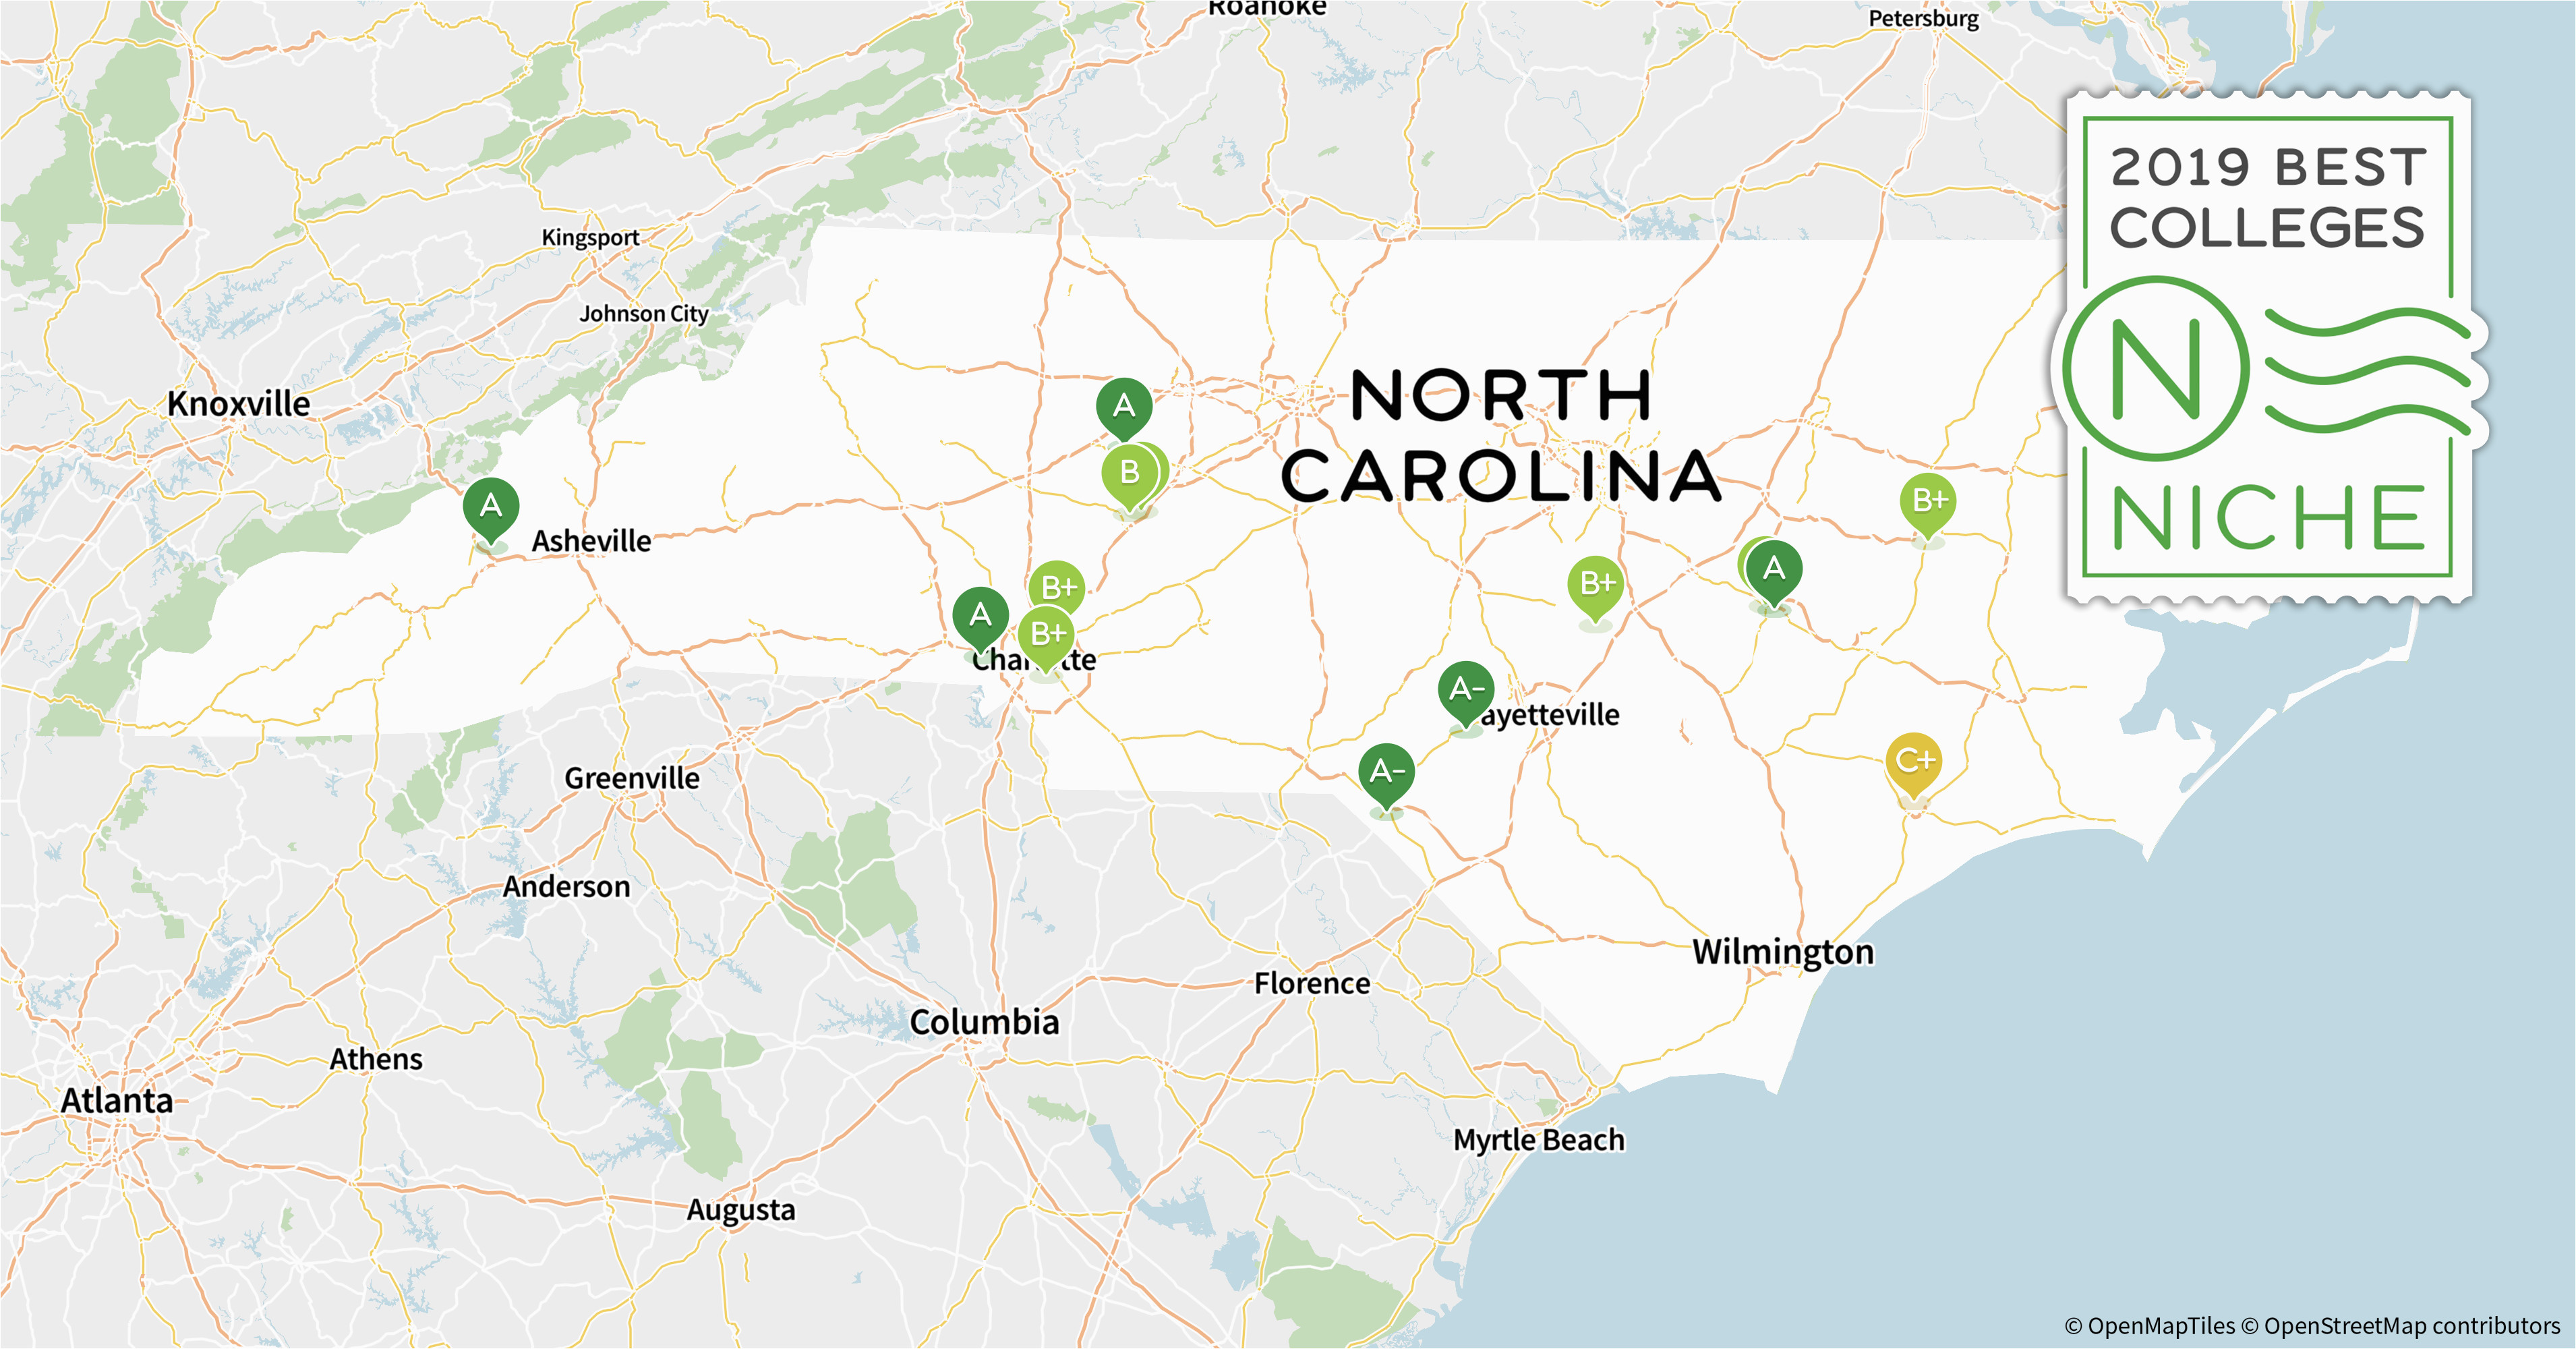 Colleges In north Carolina Map 2019 Best Colleges In north Carolina Niche